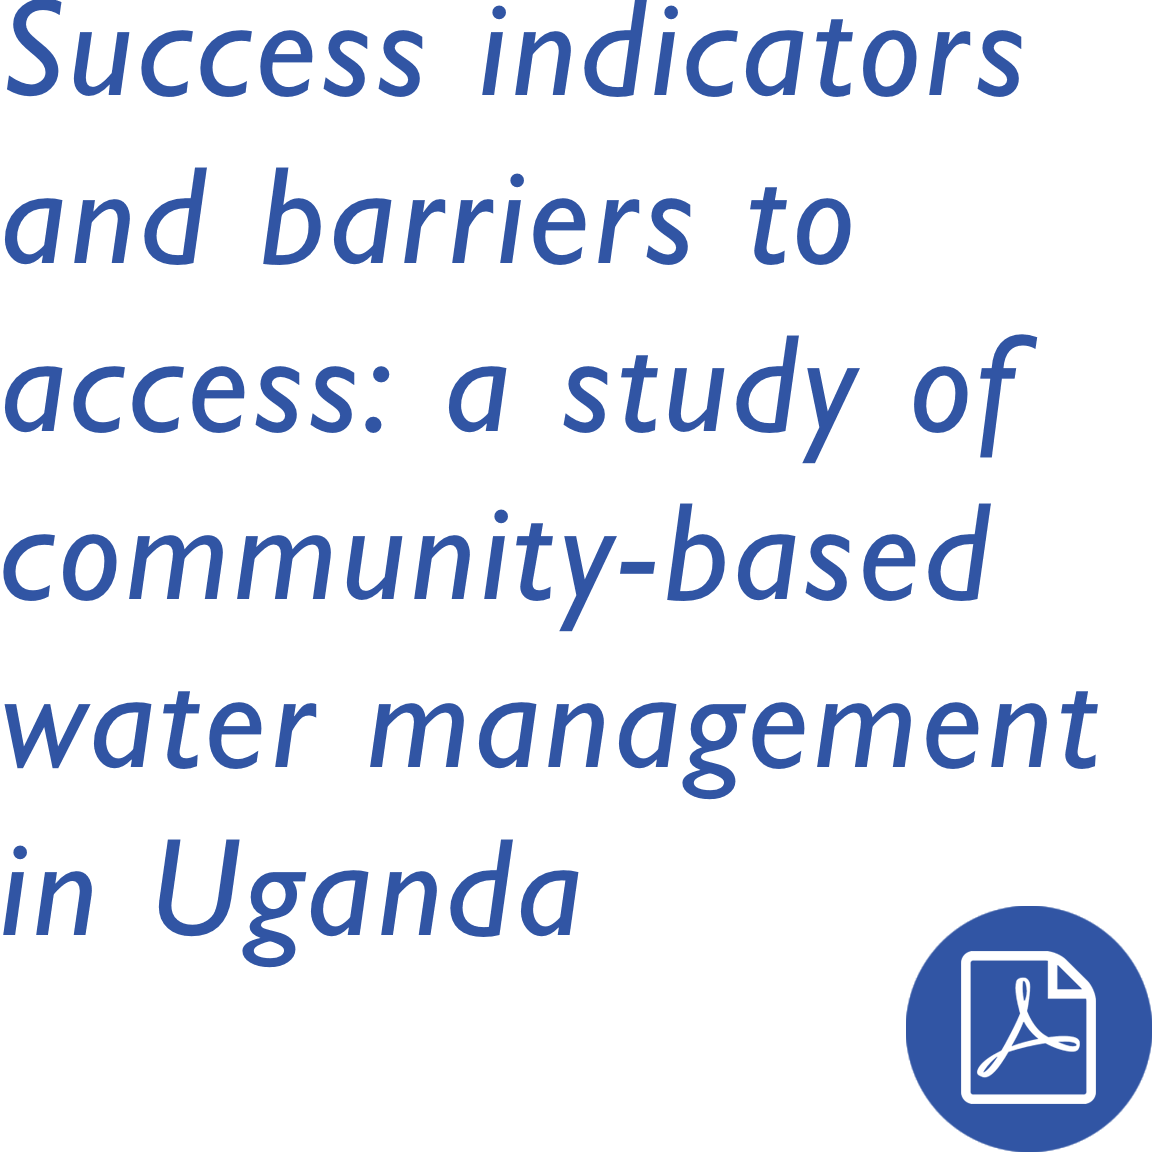 Success indicators and barriers to access: a study of community-based water management in Uganda